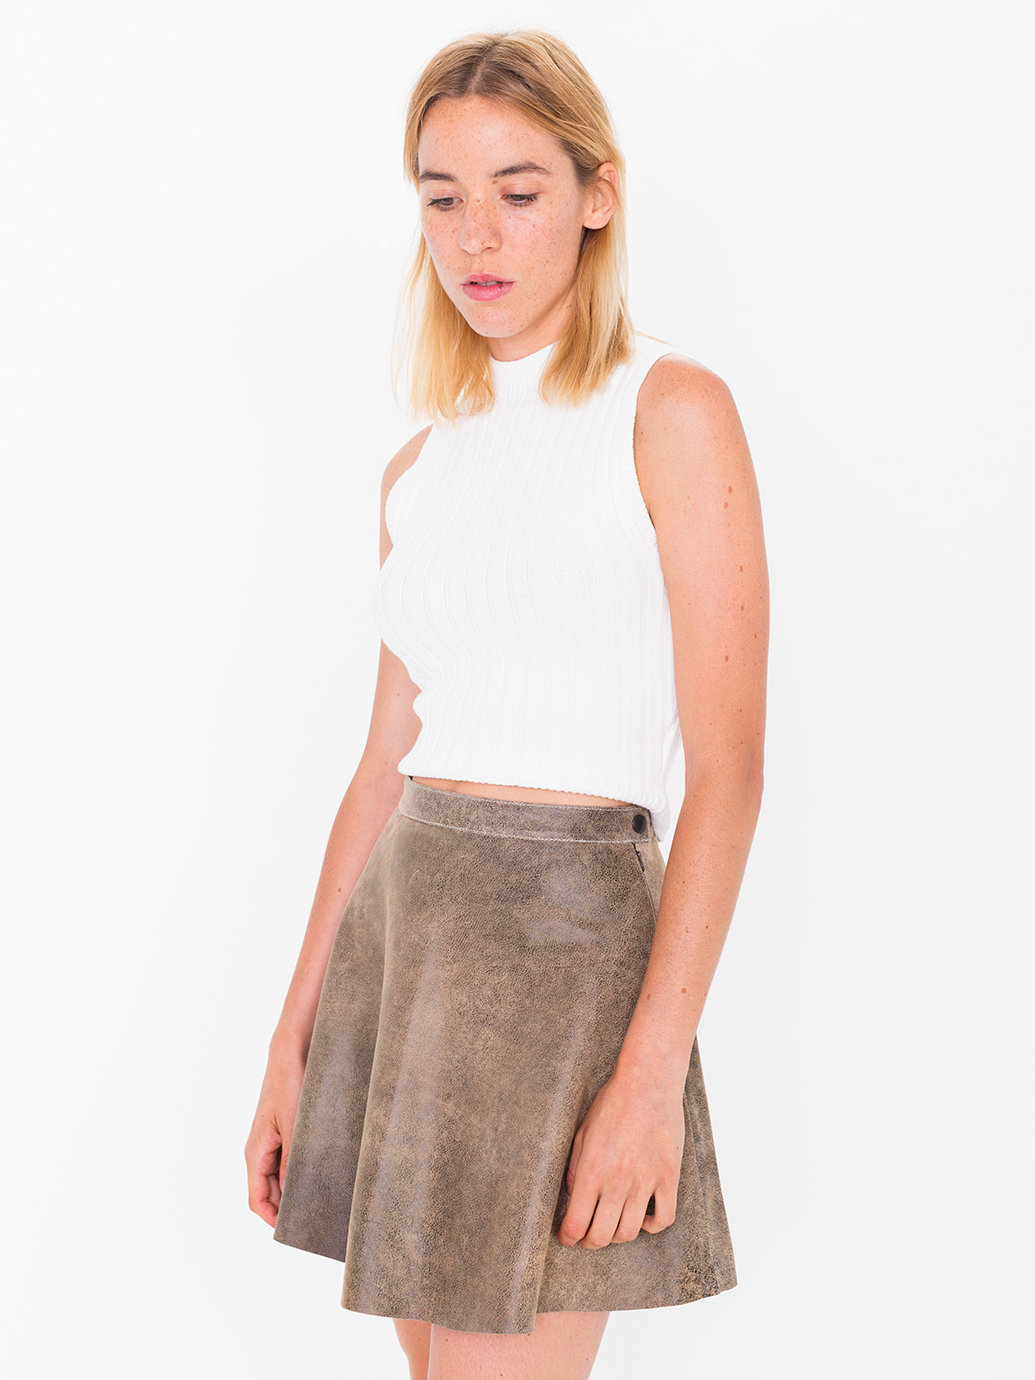 american apparel distressed lambskin leather circle skirt